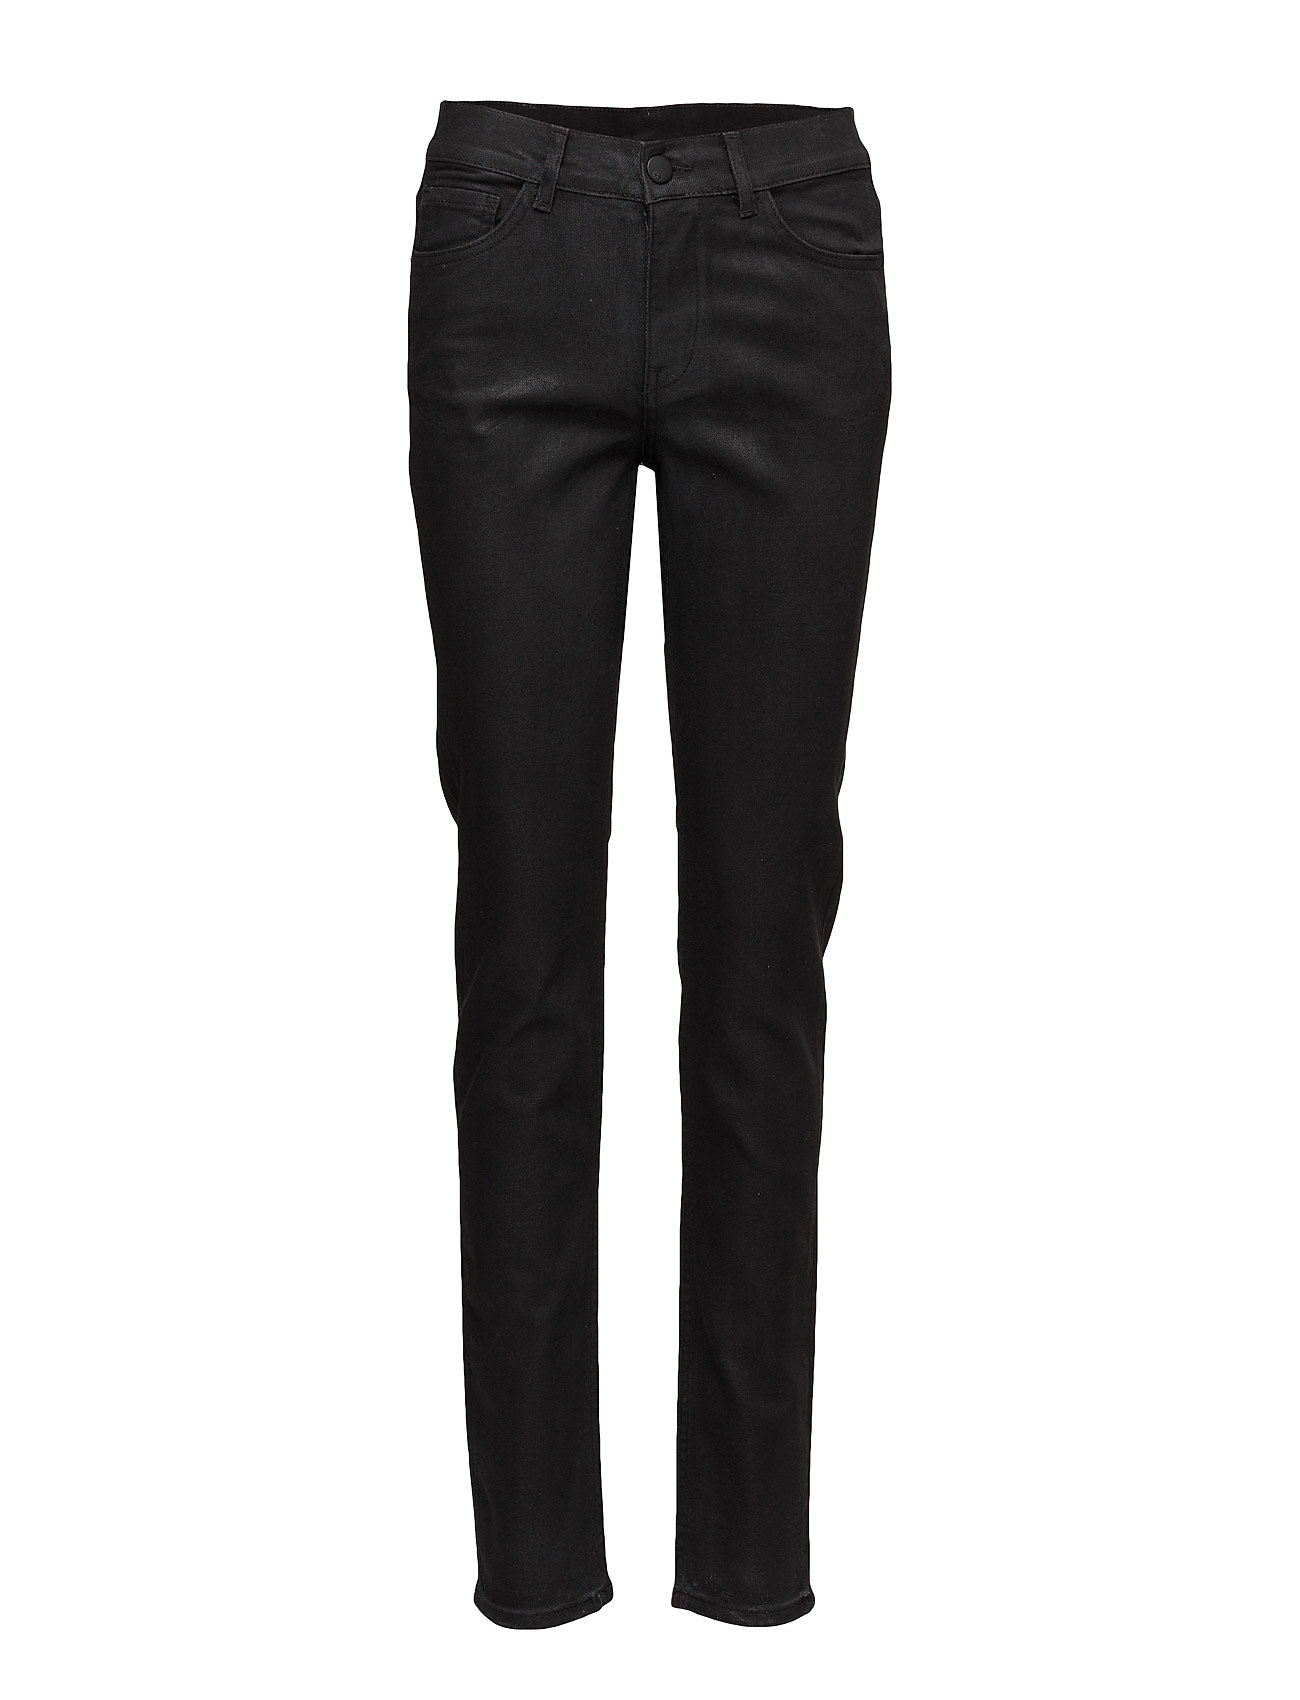 Day Birger et Mikkelsen Day Square Black